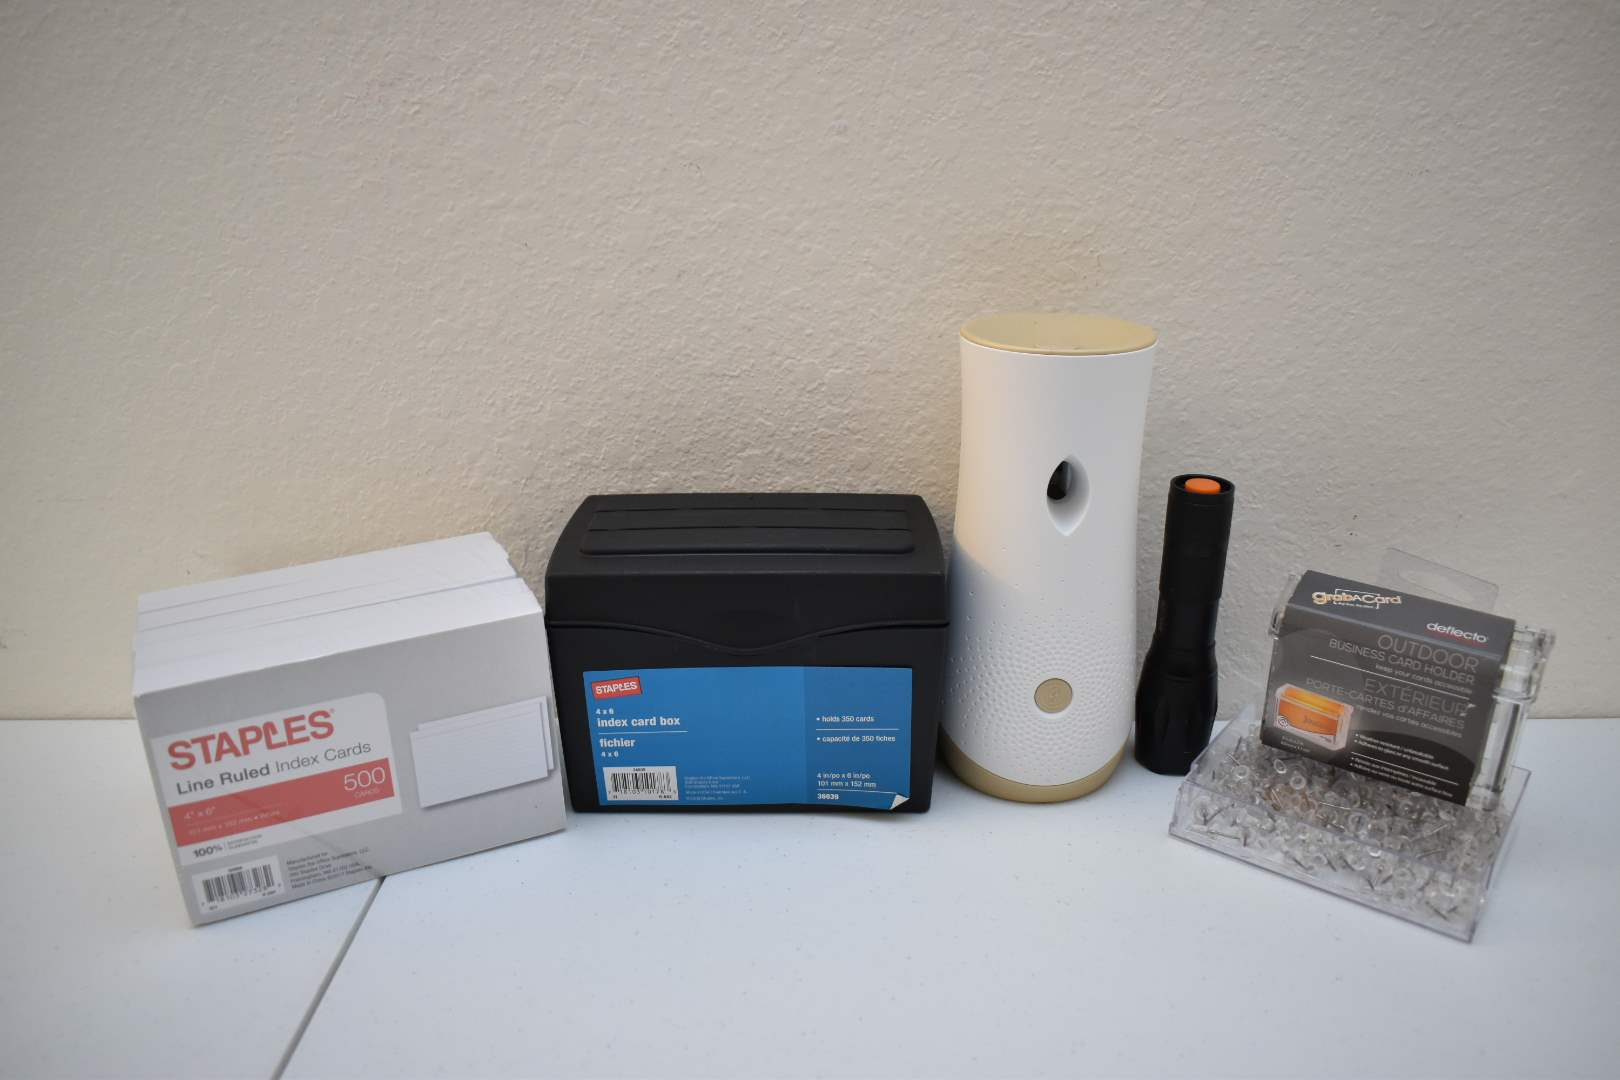 Office Supplies: Paper, Cardstock, Index Cards, Tacks, Glade Air Freshener